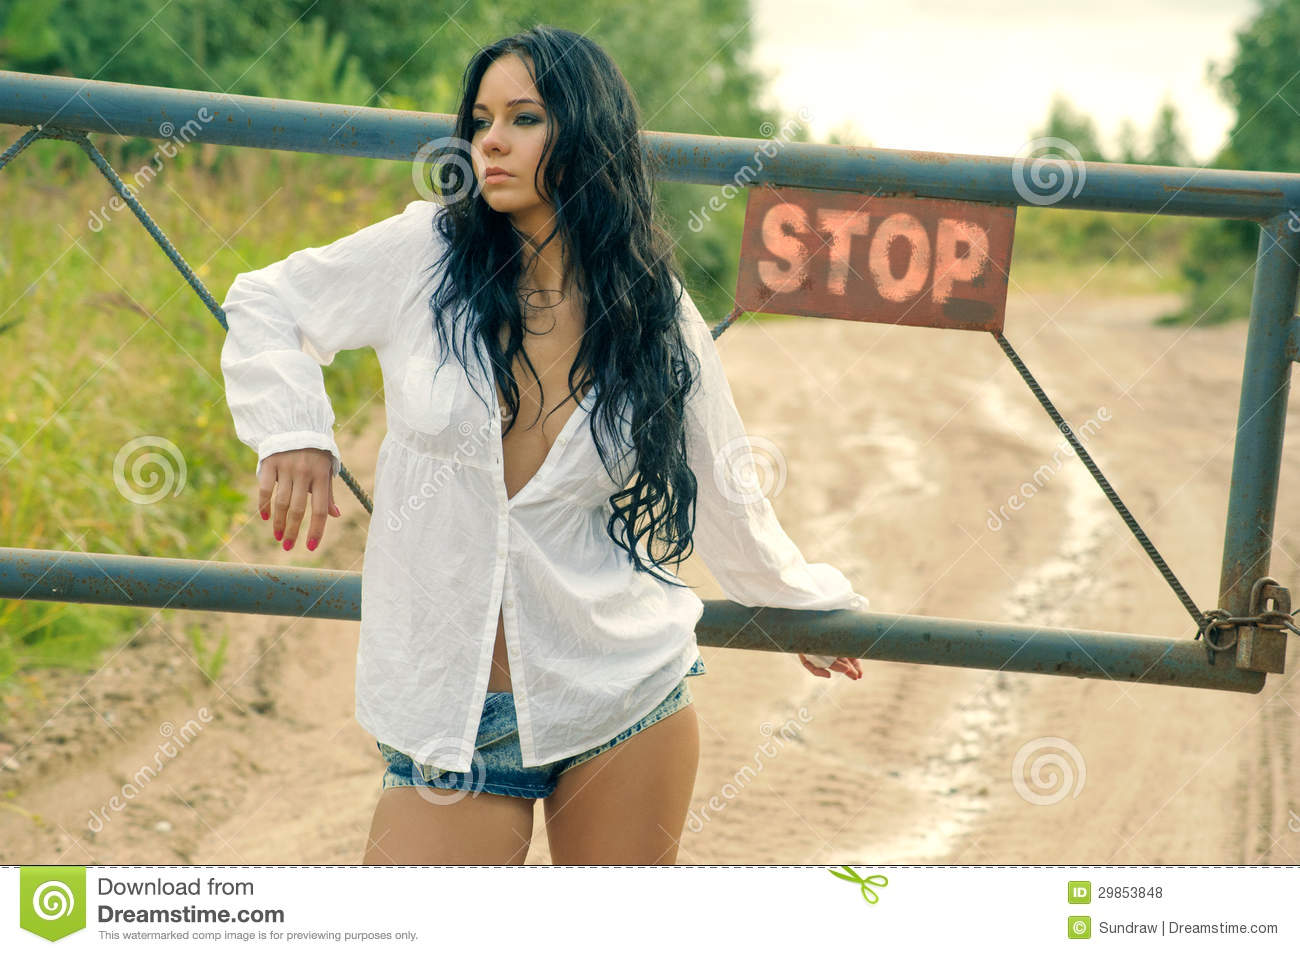 https://thumbs.dreamstime.com/z/girl-mini-denim-shorts-standing-turnpike-countrys-29853ad-29853848.jpg